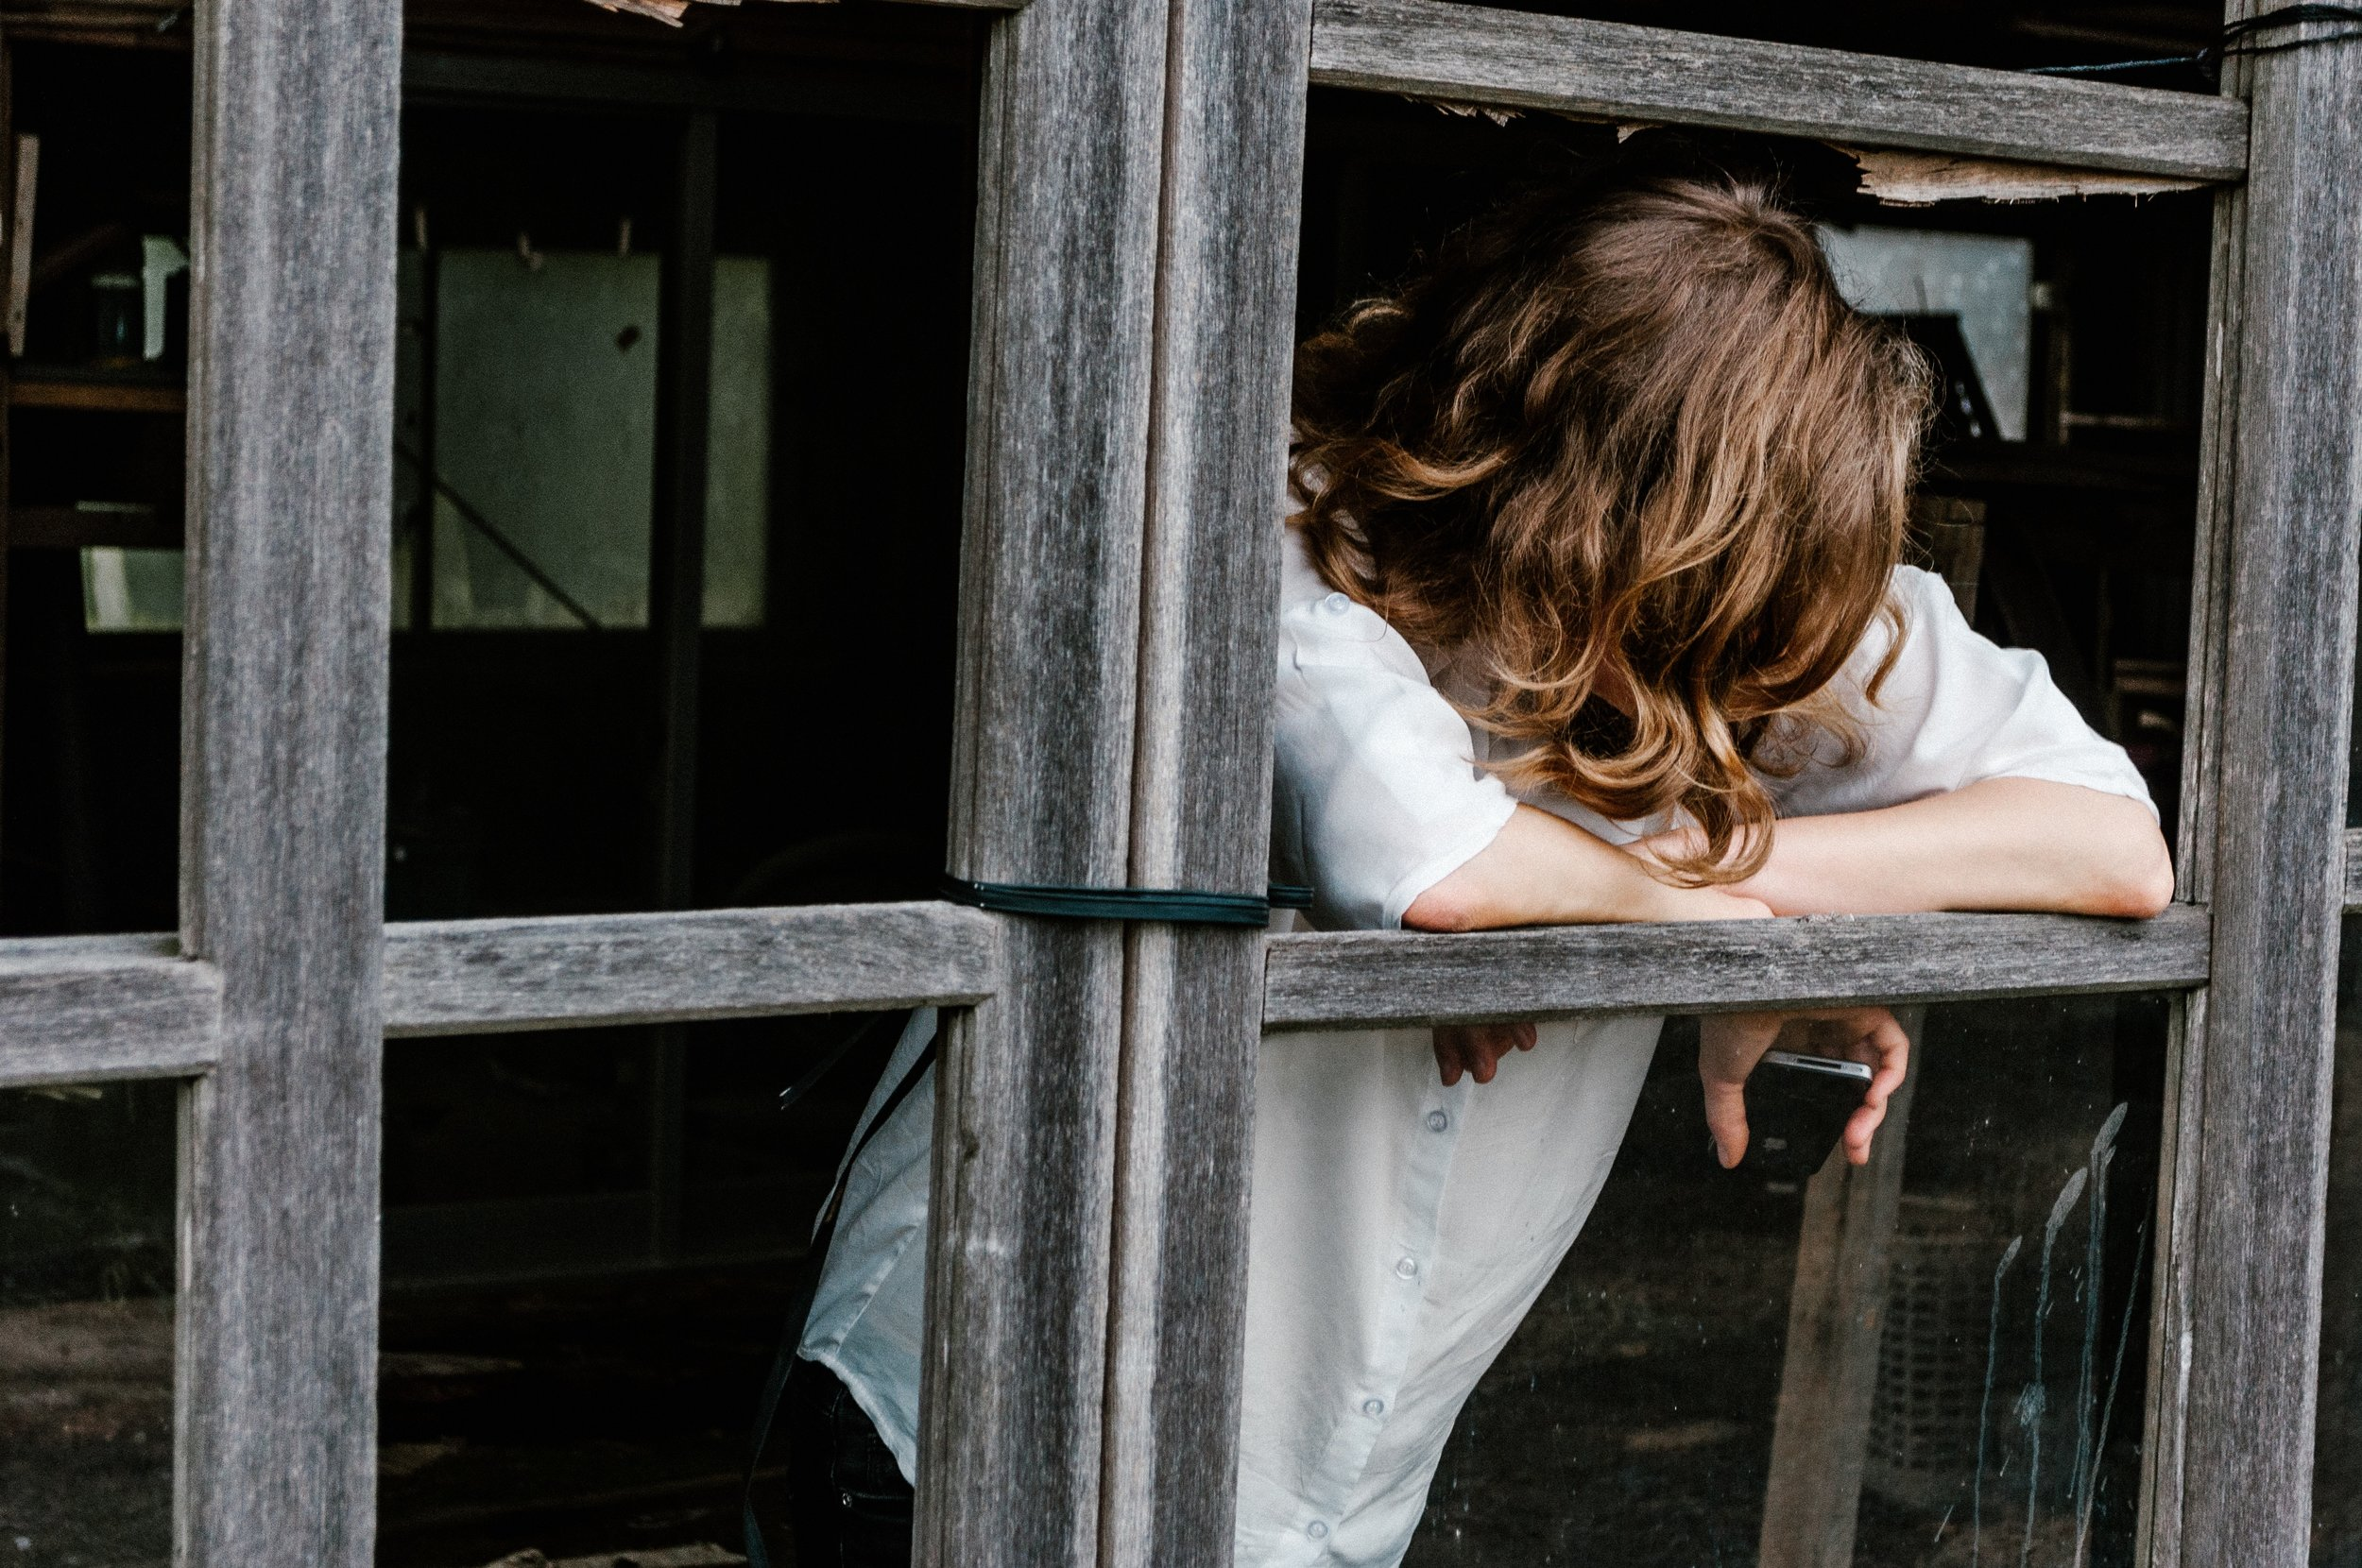 What does anxiety actually feel like? Read more from Holl & Lane at hollandlanemag.com